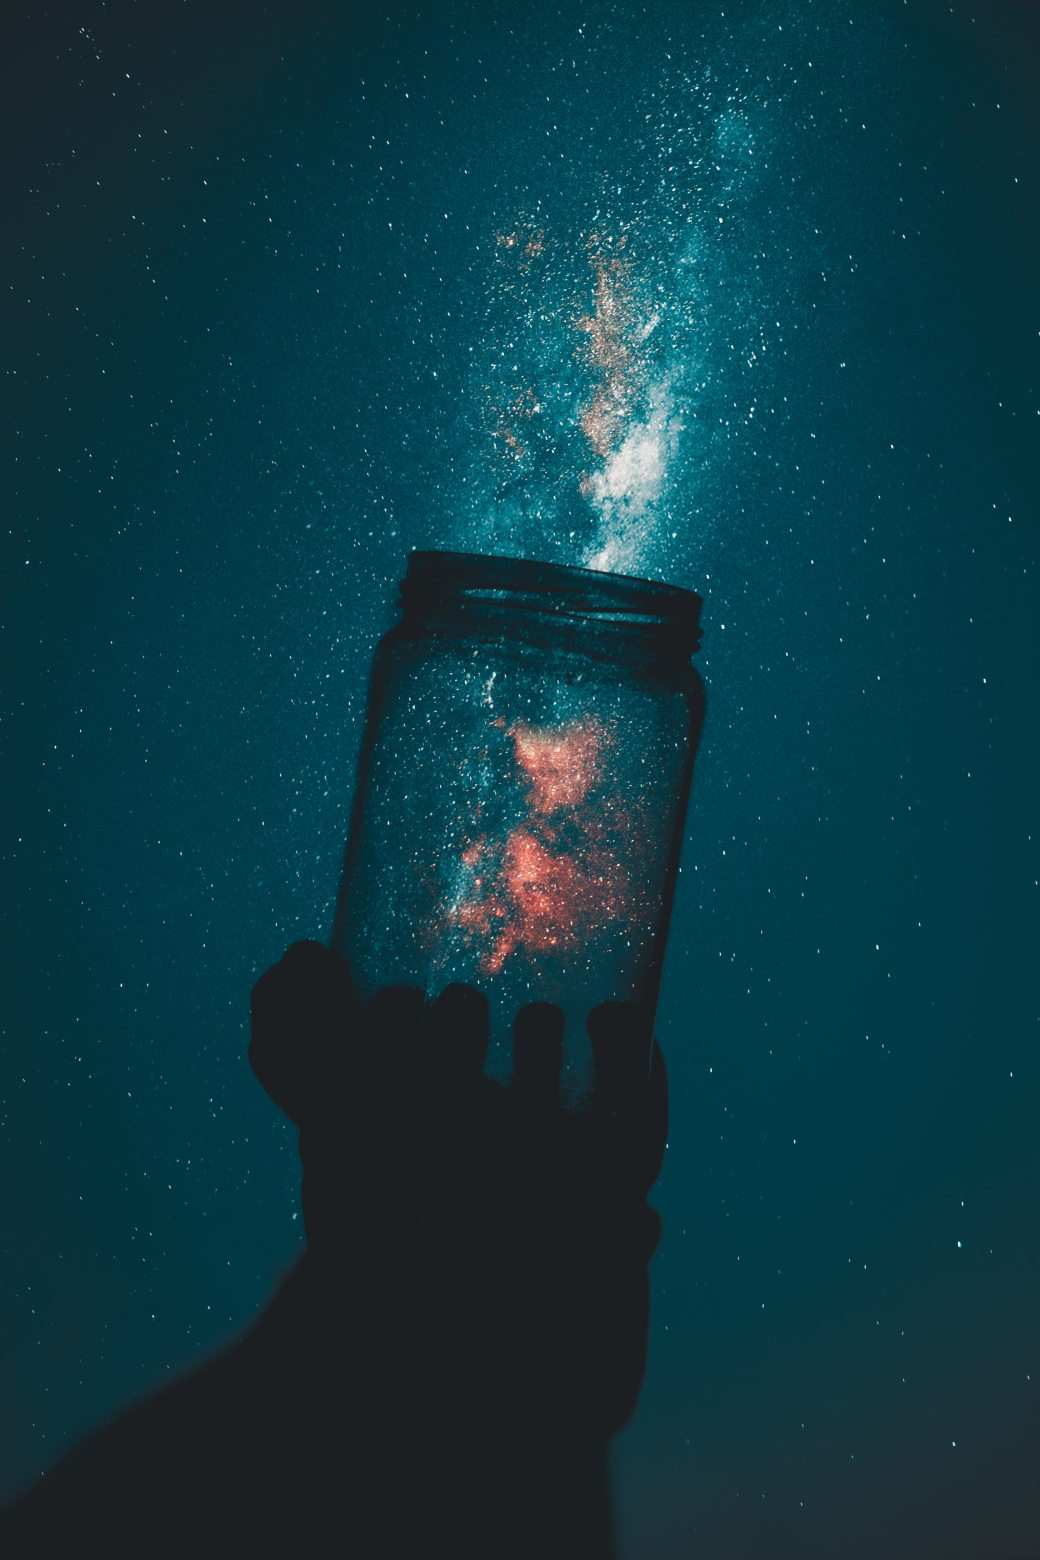 silhouette-of-person-holding-glass-mason-jar-1274260